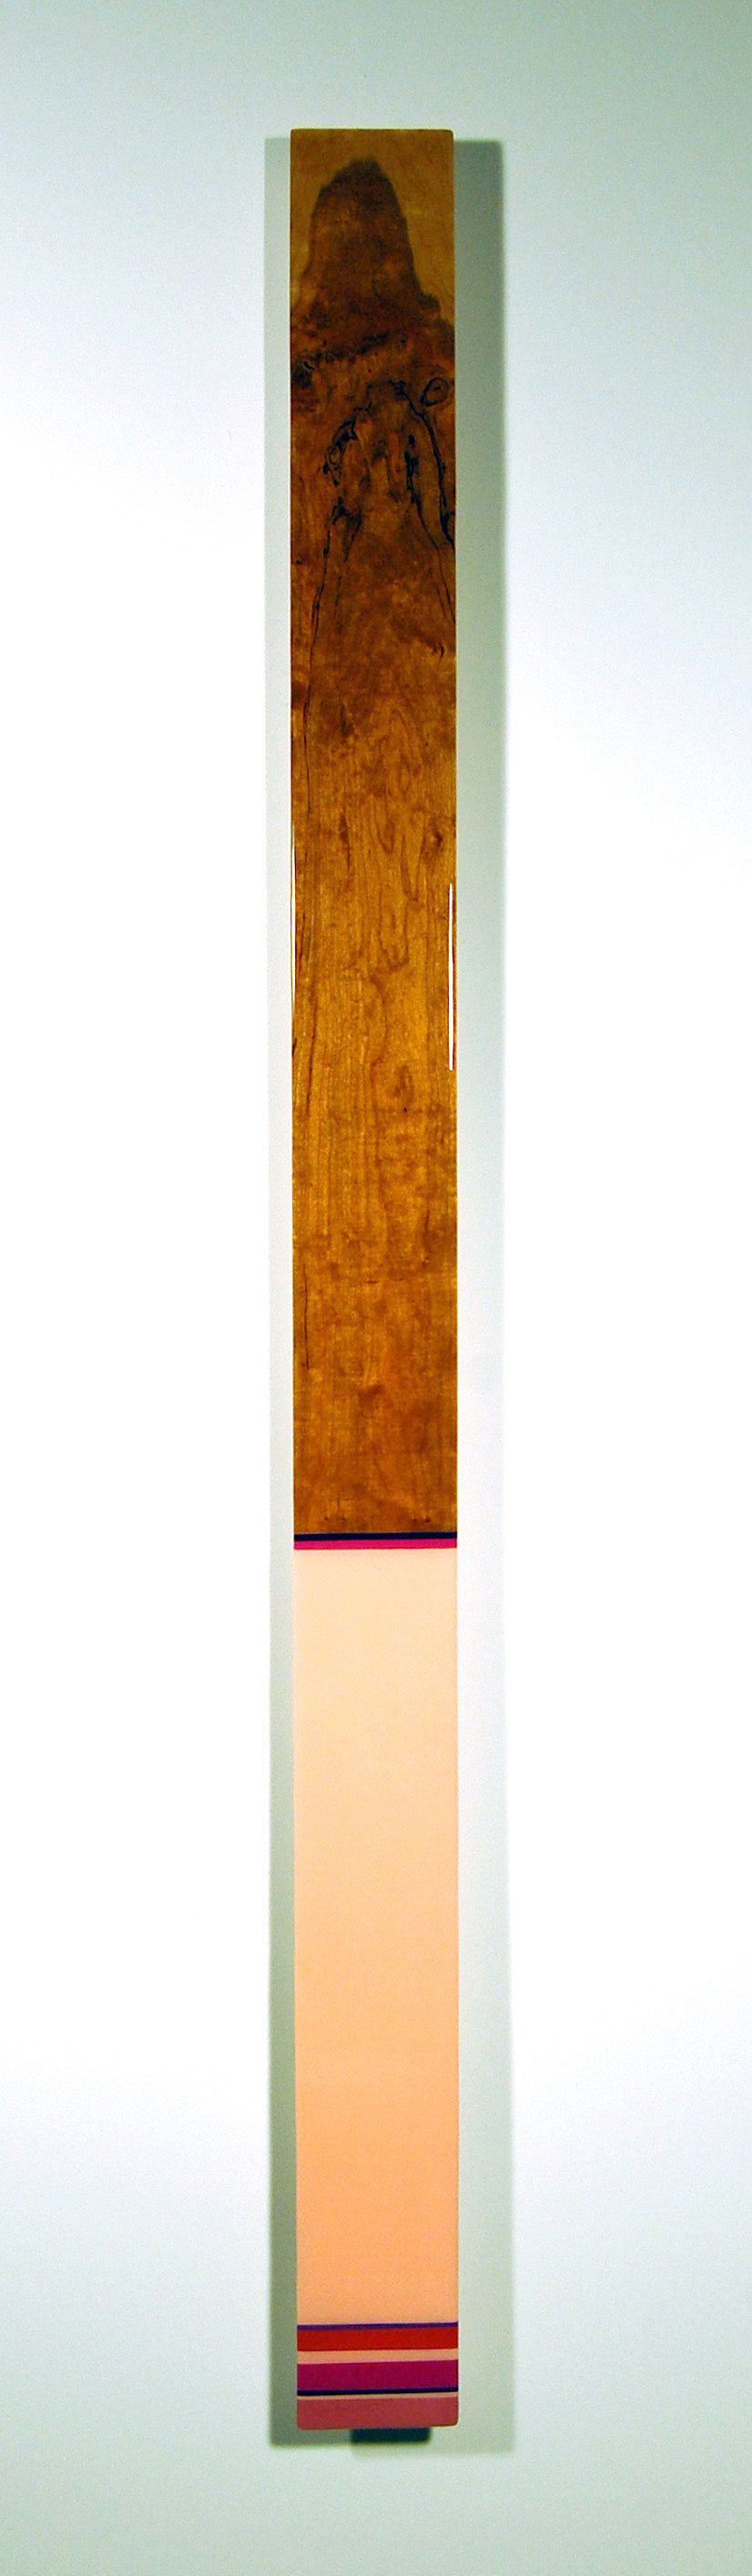 "Leaner L6  - Acrylic, Cherry, select pine, and UV resin - Dim: 82"" x 4.5"" x 2"" / 208 x 11 x 6 cm"